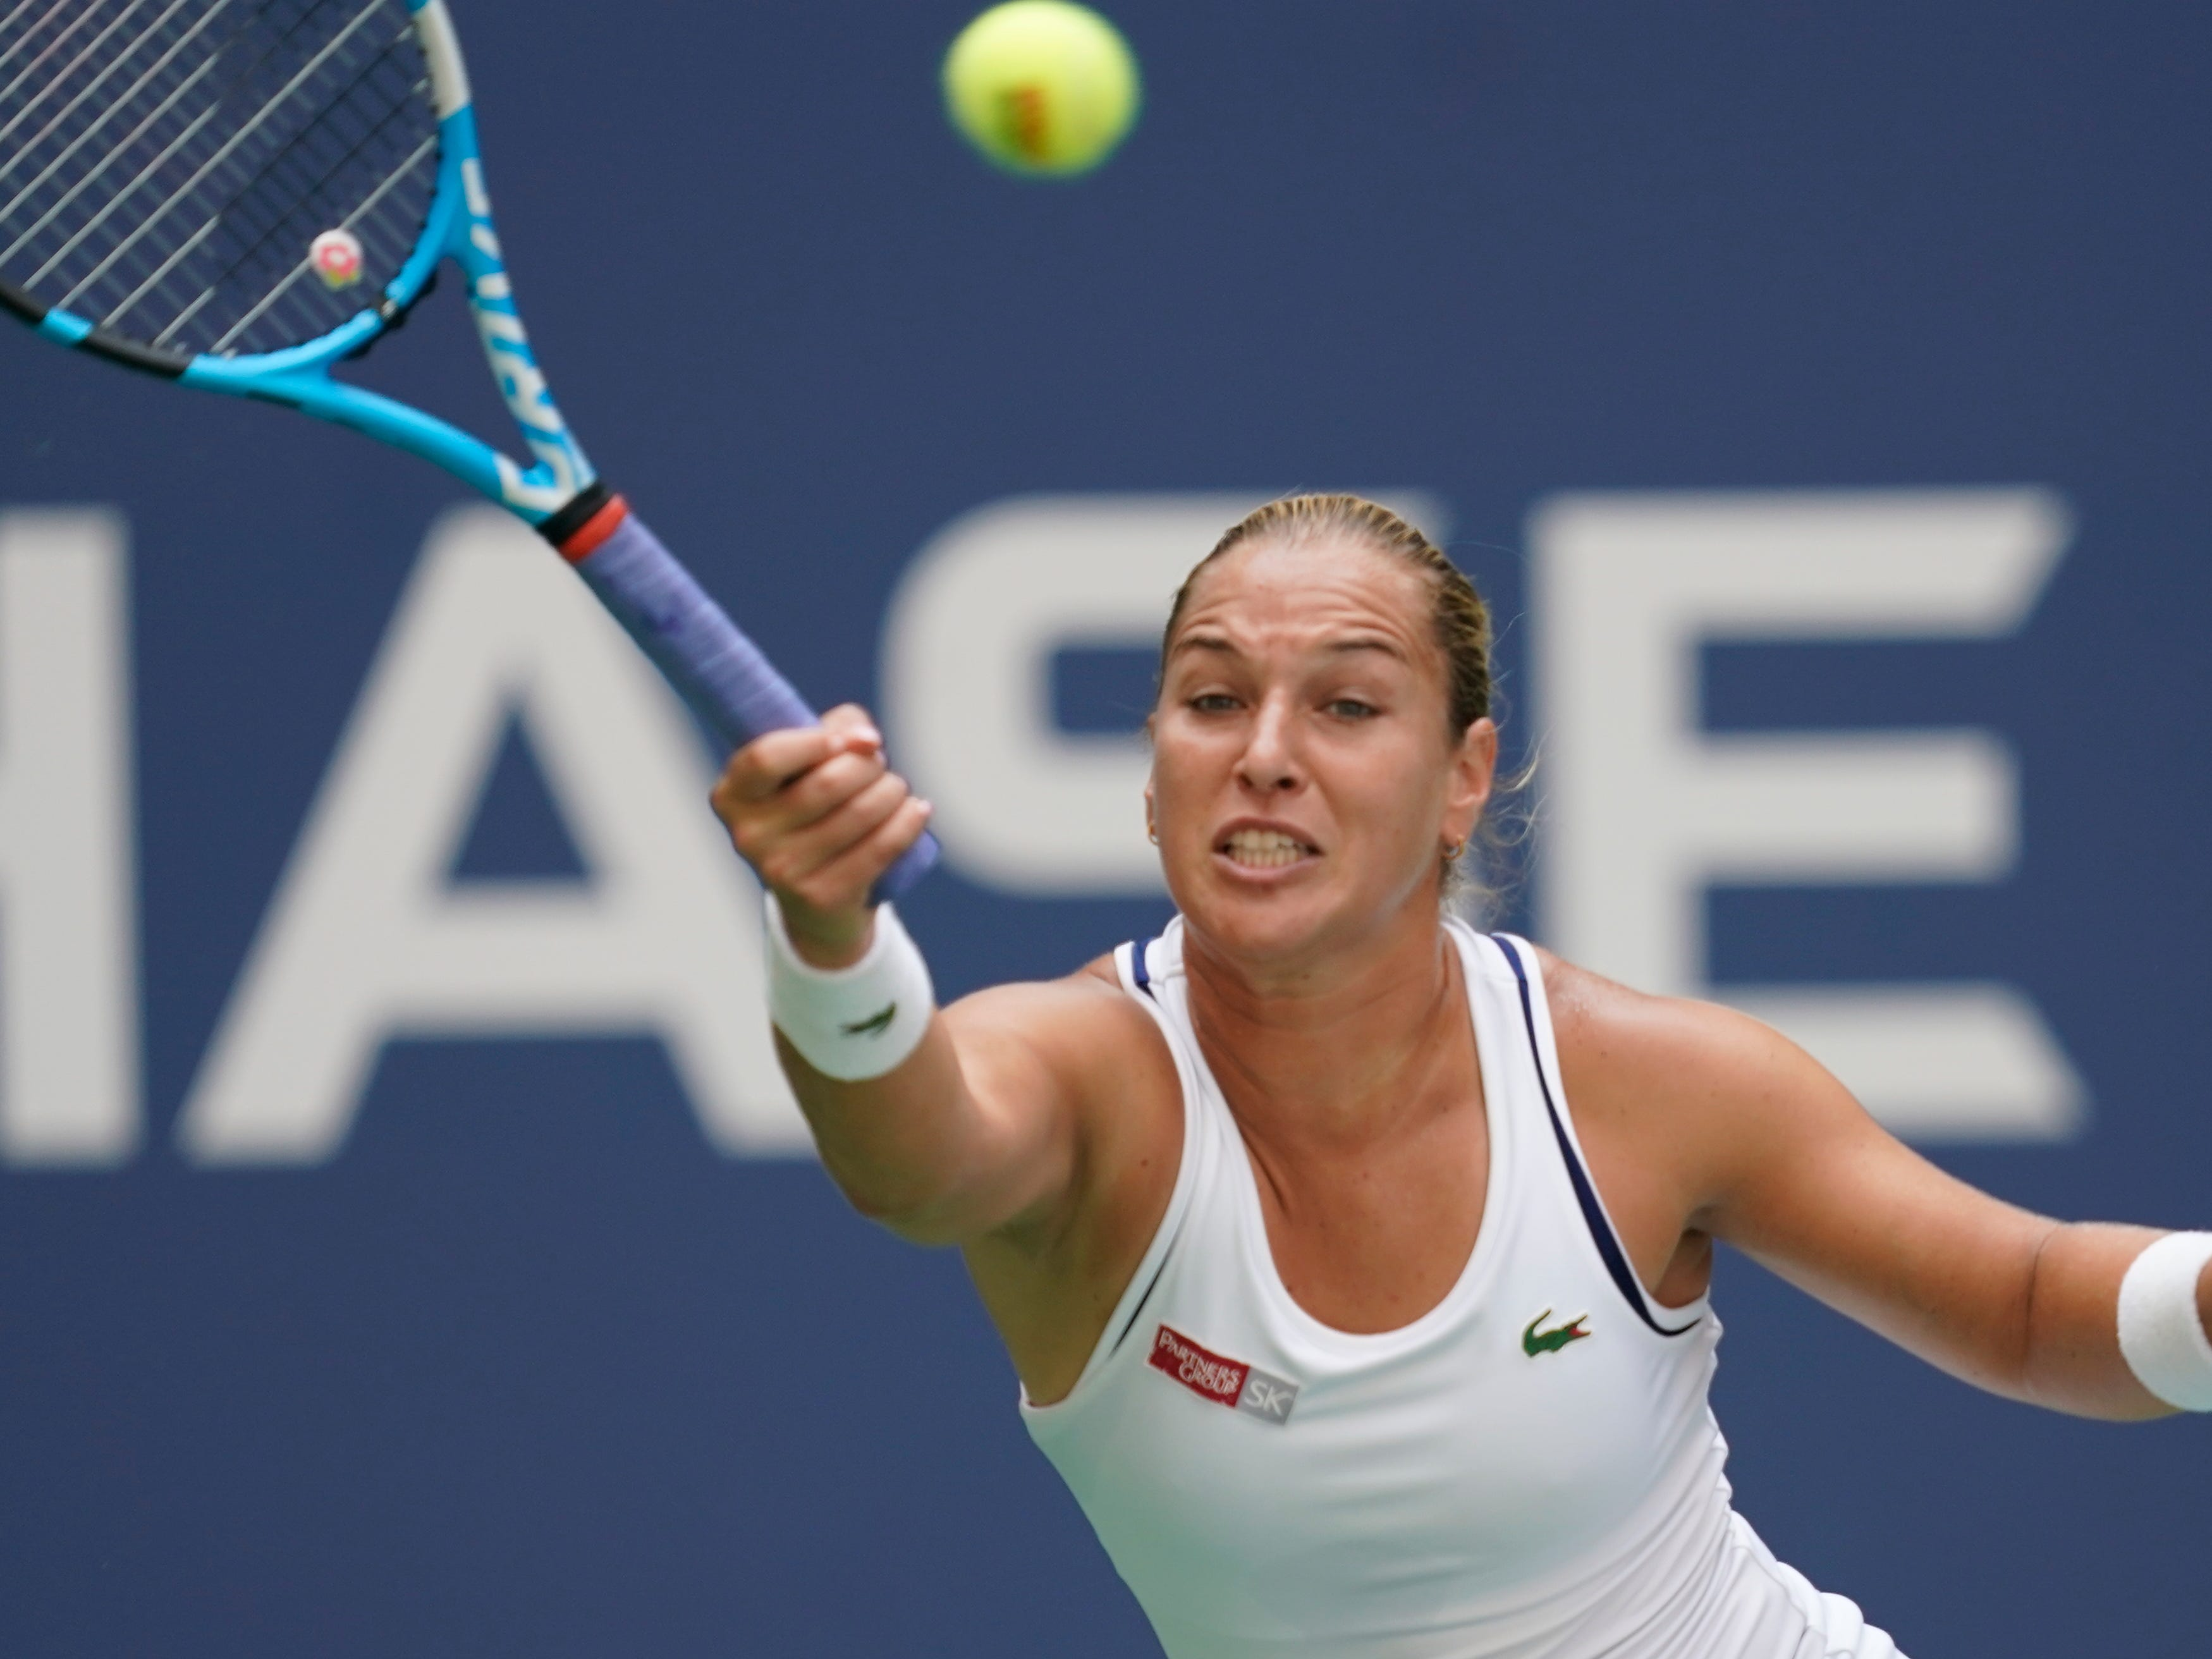 Dominika Cibulkova returns to Madison Keys.